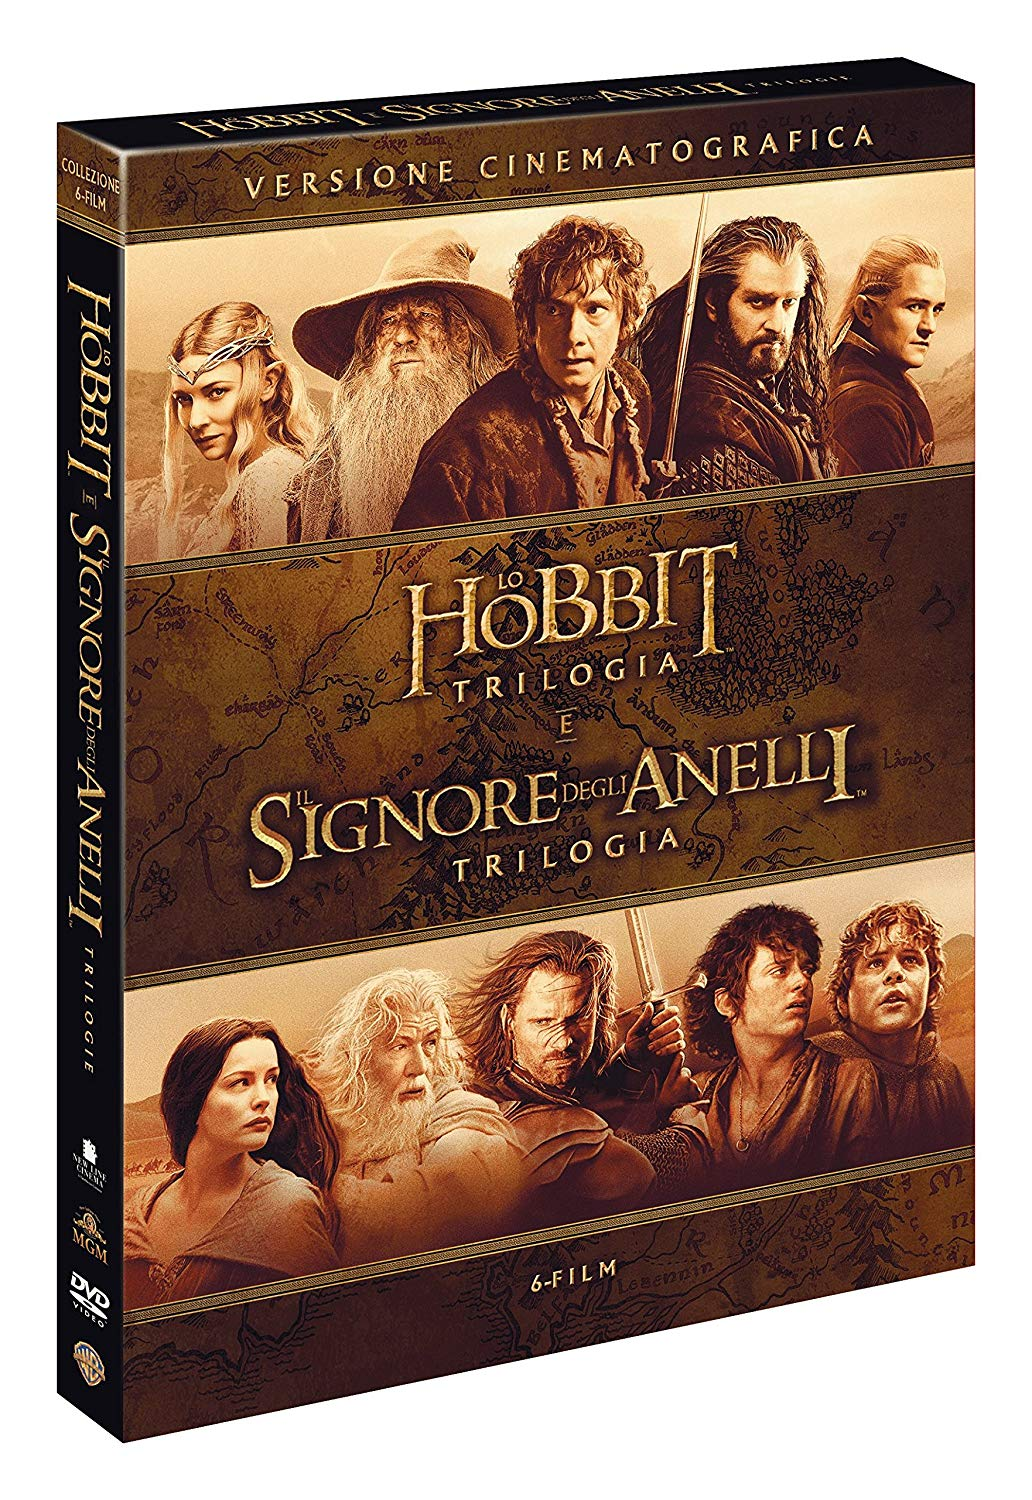 COF.SIGNORE DEGLI ANELLI / HOBBIT - 6 FILM THEATRICAL VERSION (6